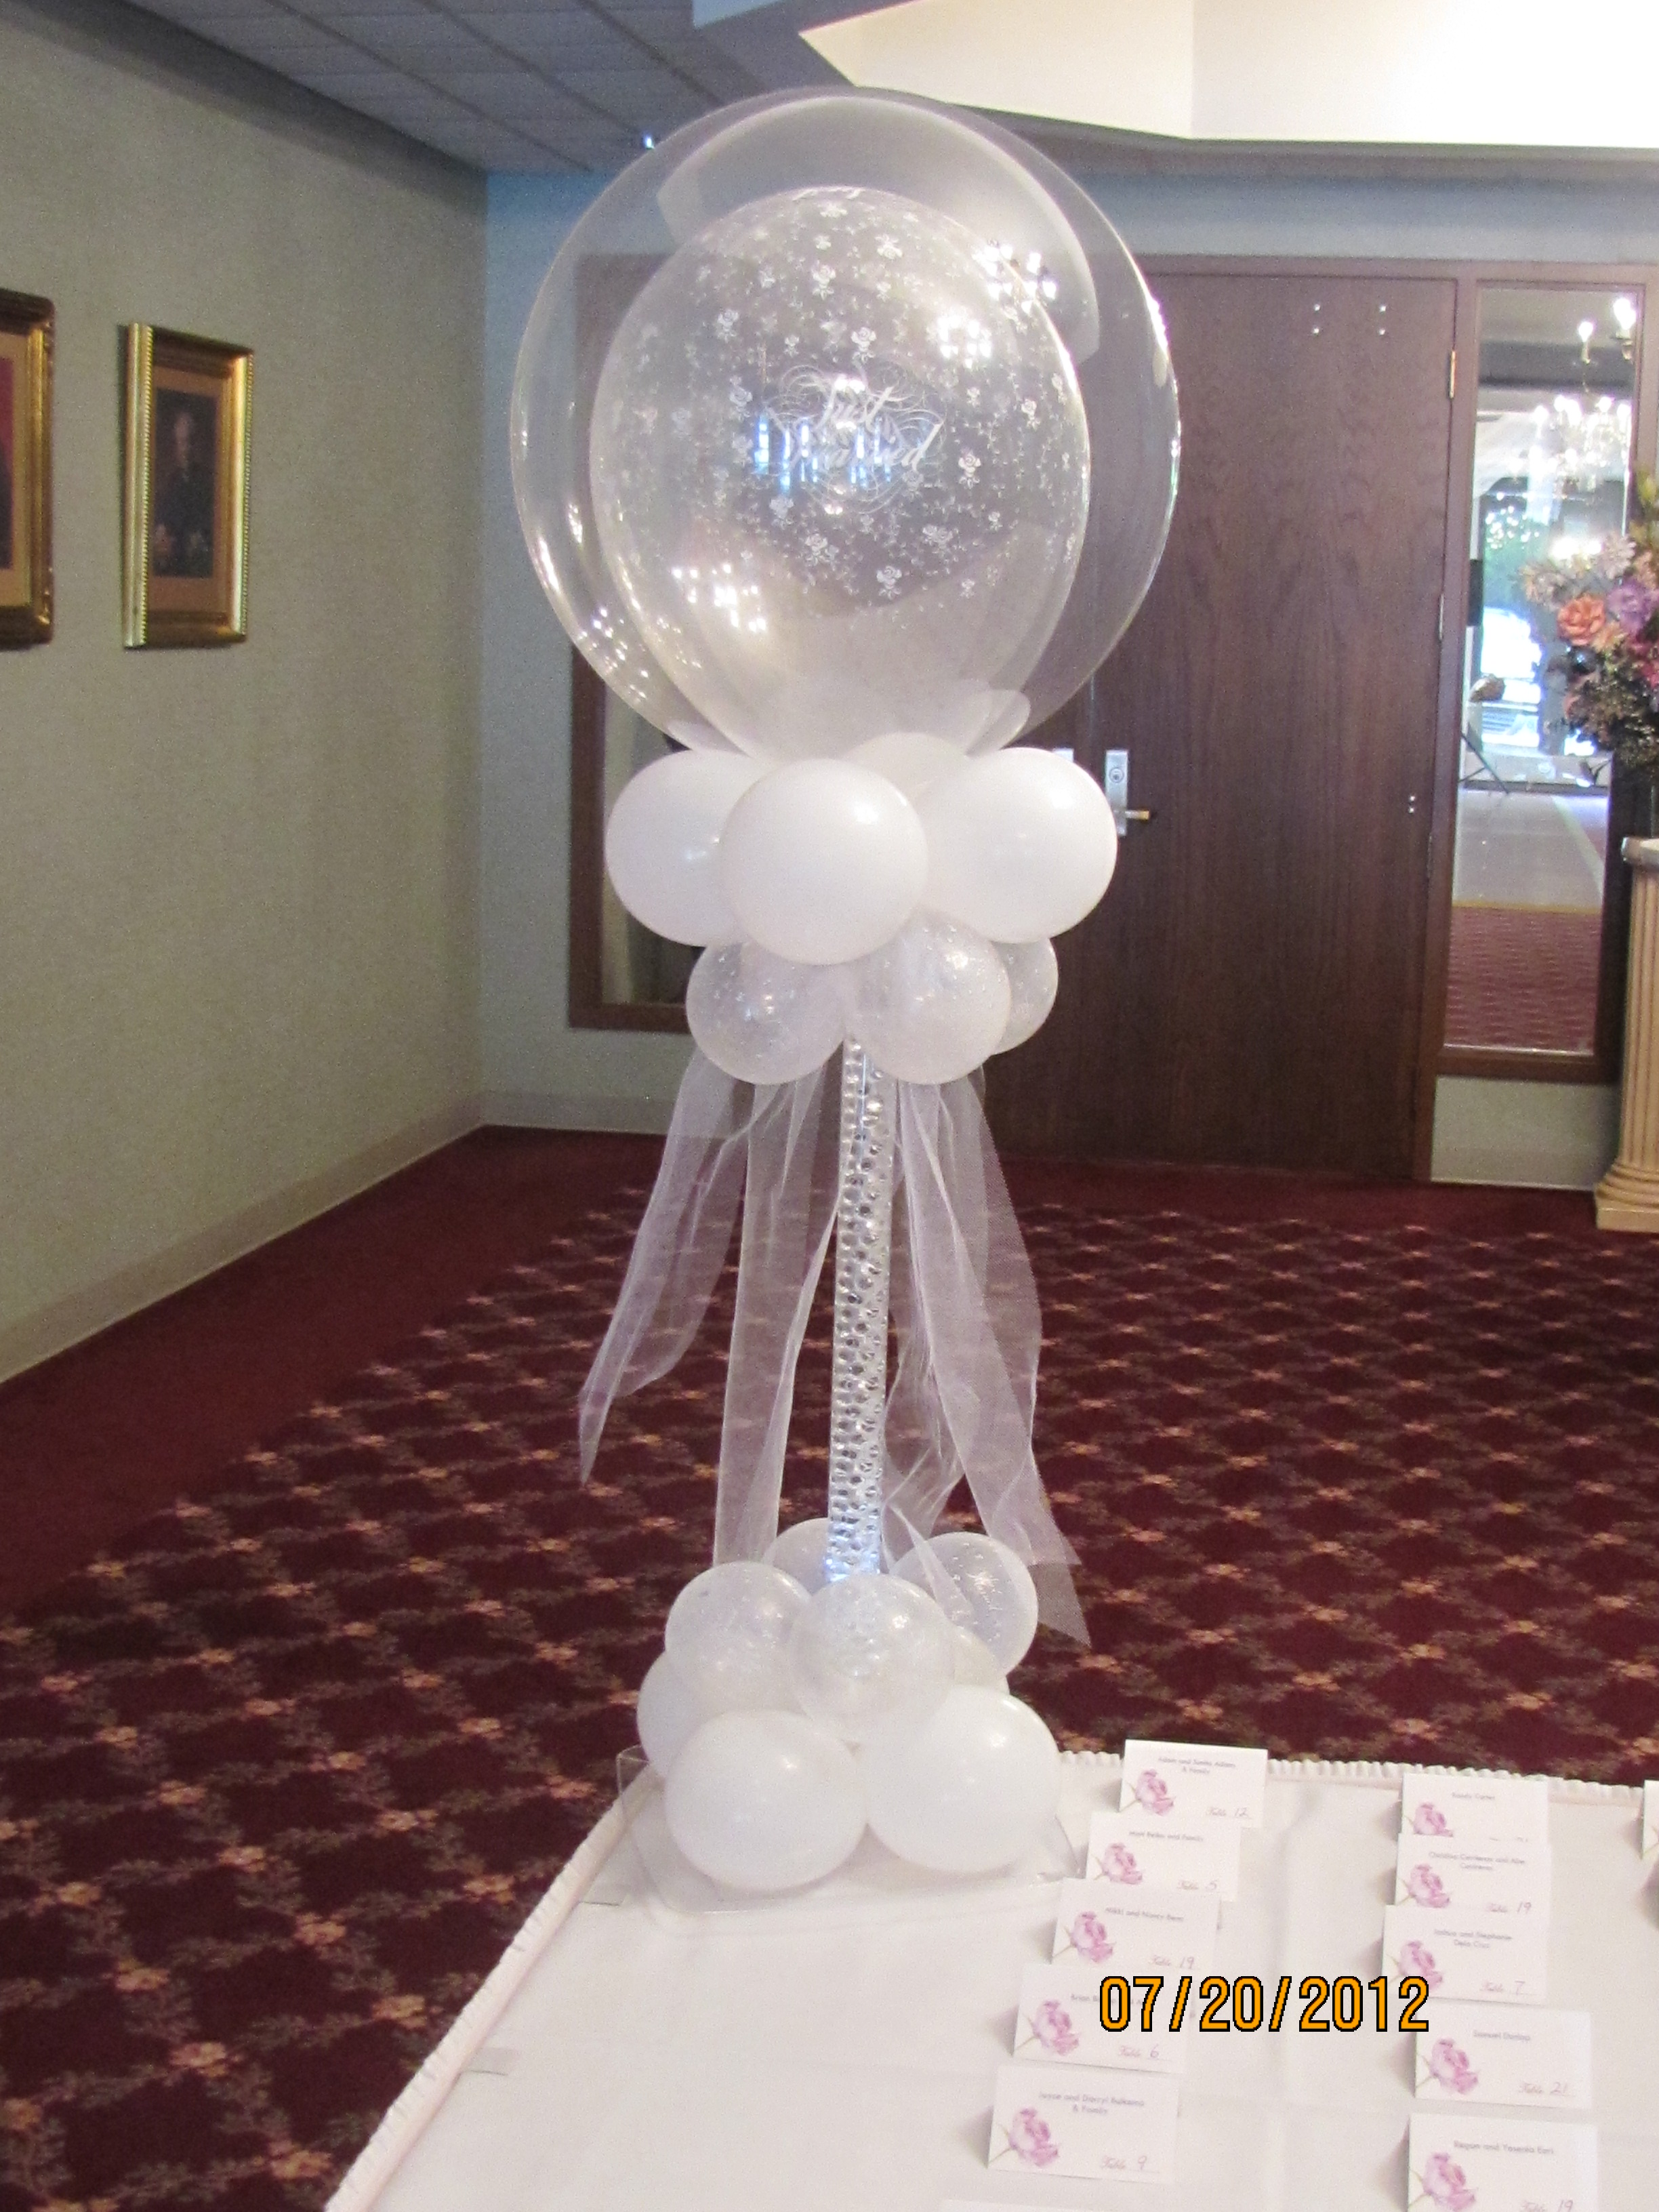 northwest indiana balloon decor amytheballoonlady. Black Bedroom Furniture Sets. Home Design Ideas